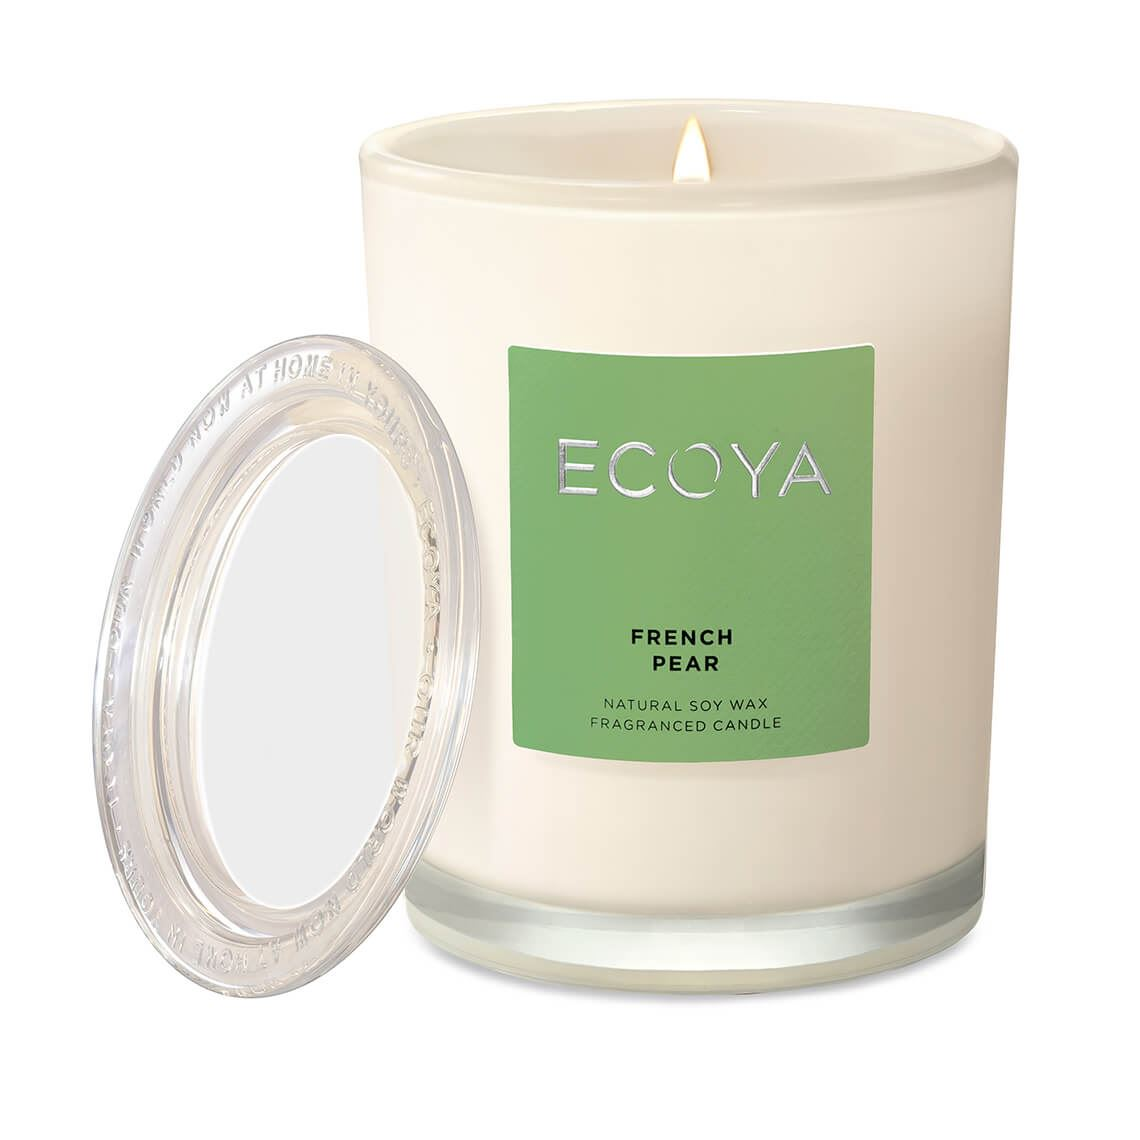 Ecoya Metro Jar Size W 8cm x D 8cm x H 11cm in French Pear Freedom